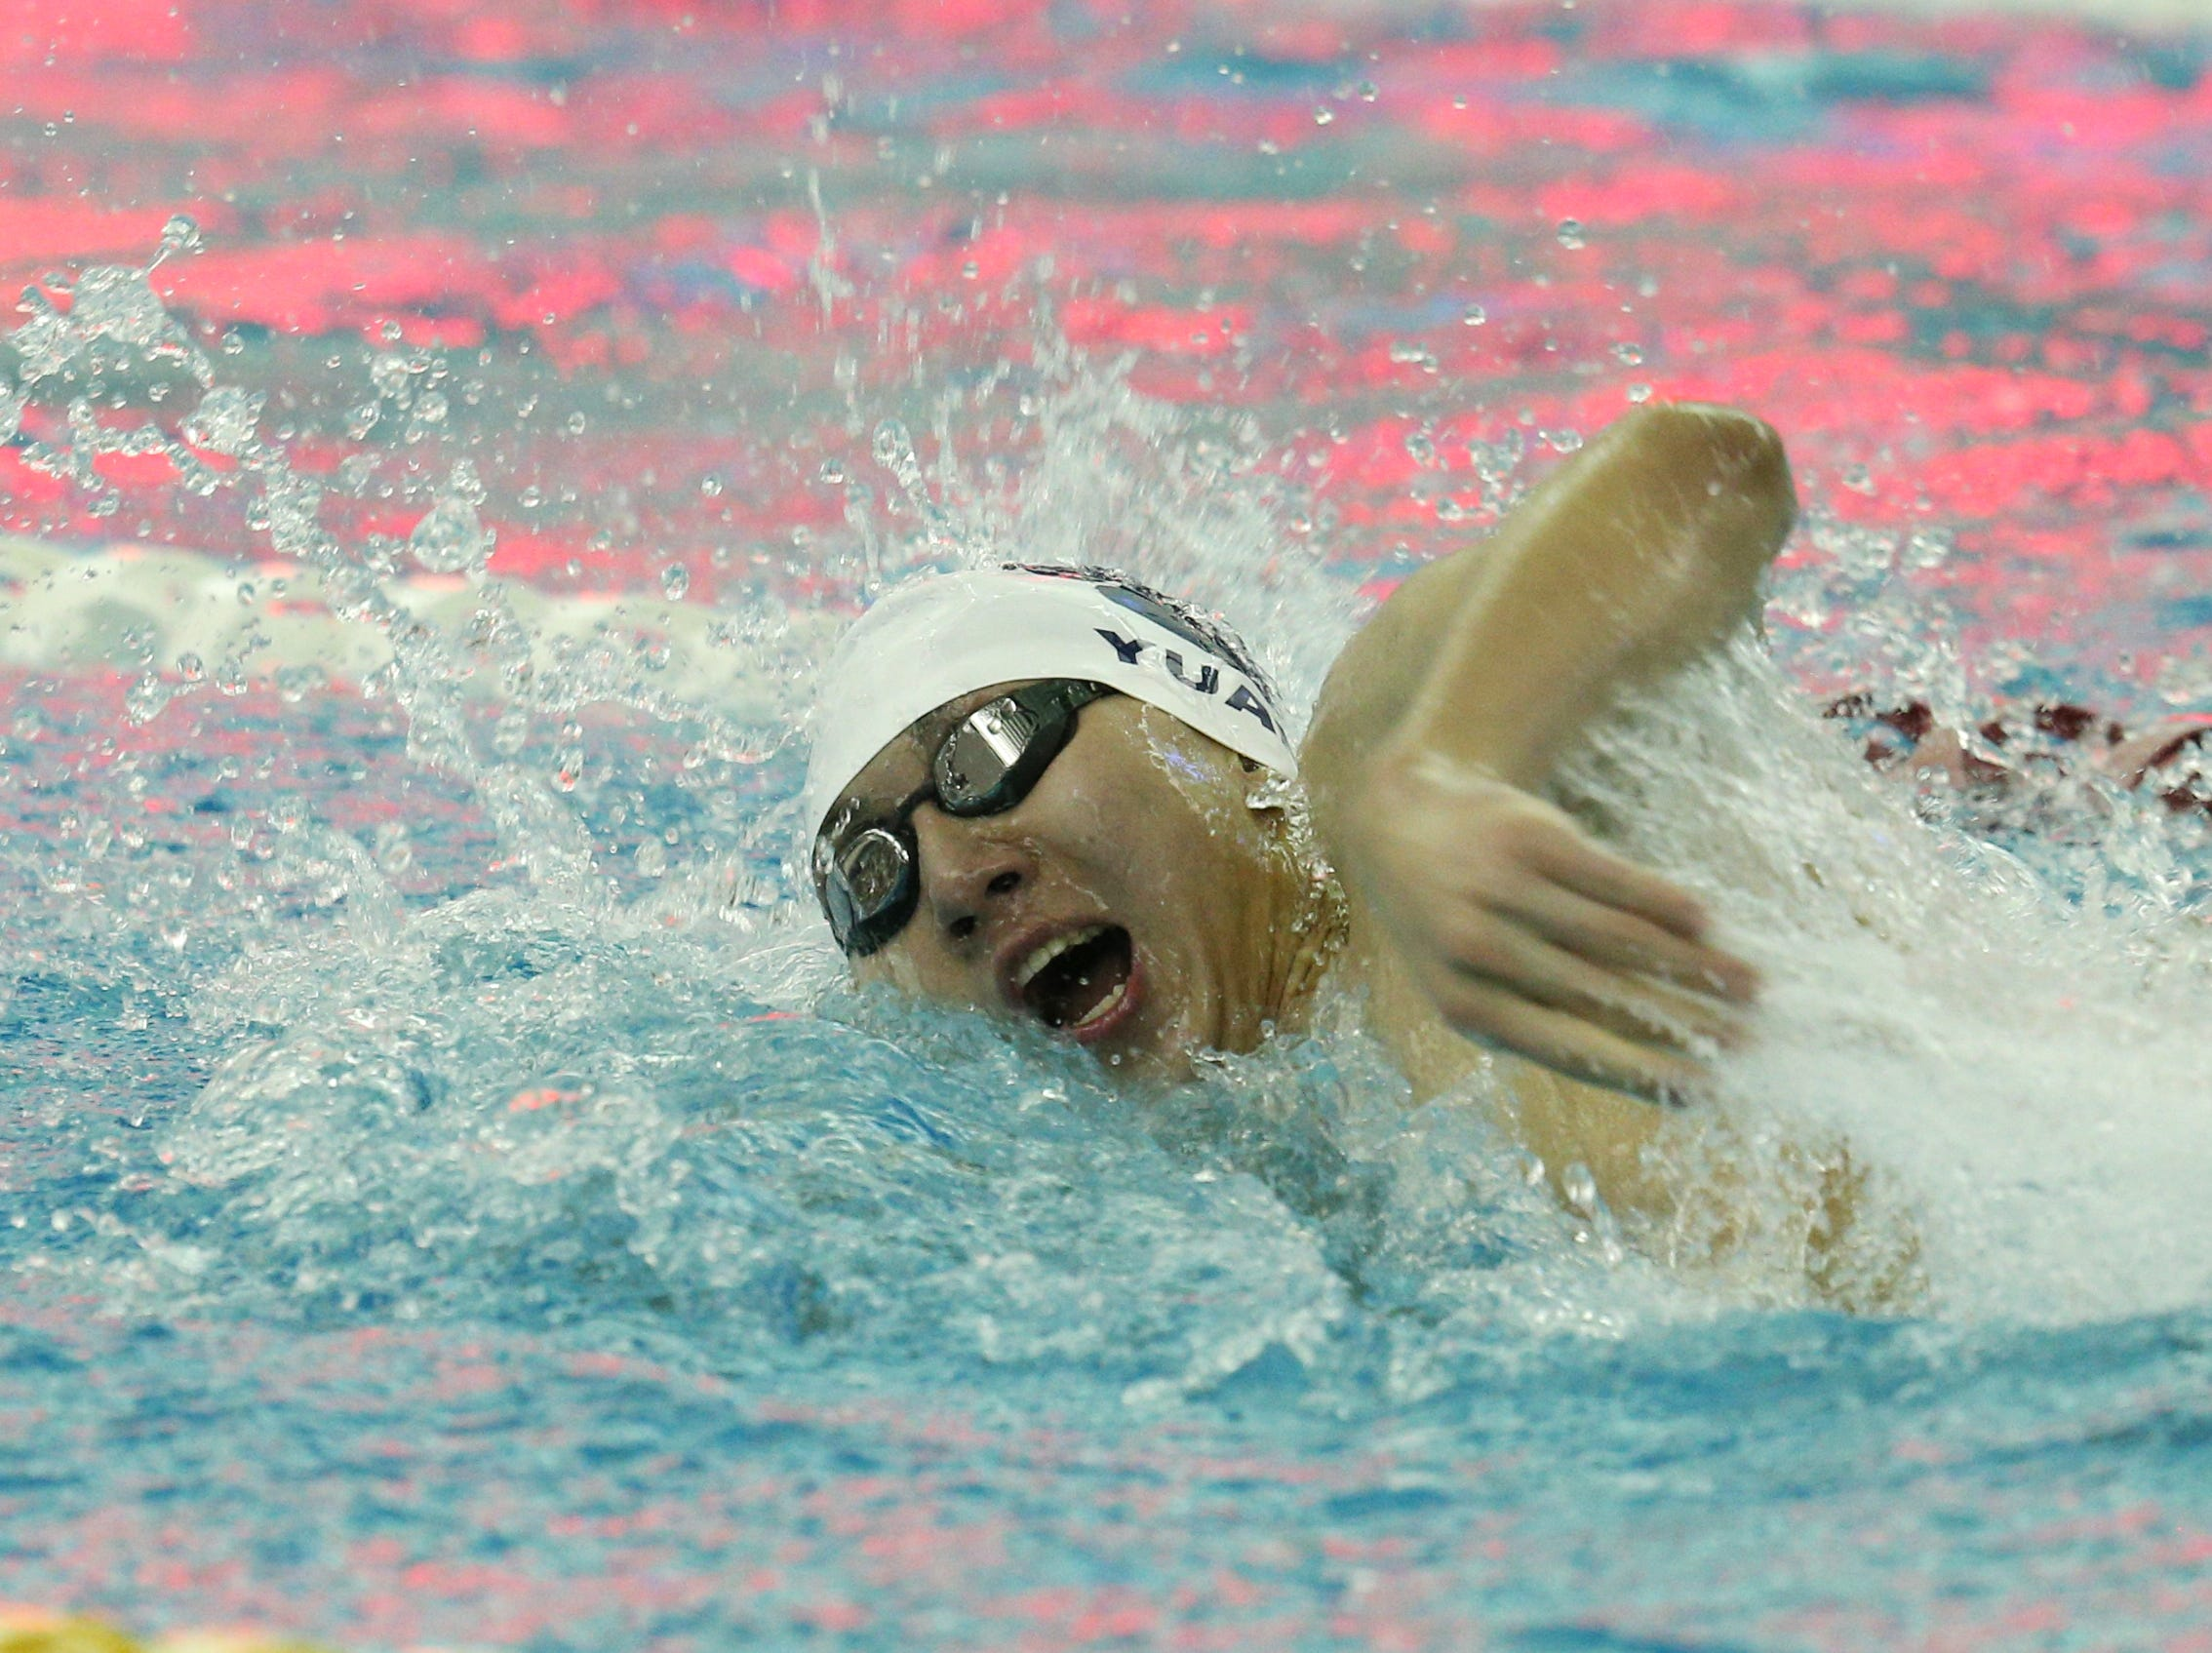 Kyle Yuan swims the third leg for Pittsford en route to victory in the 400-yard freestyle relay.